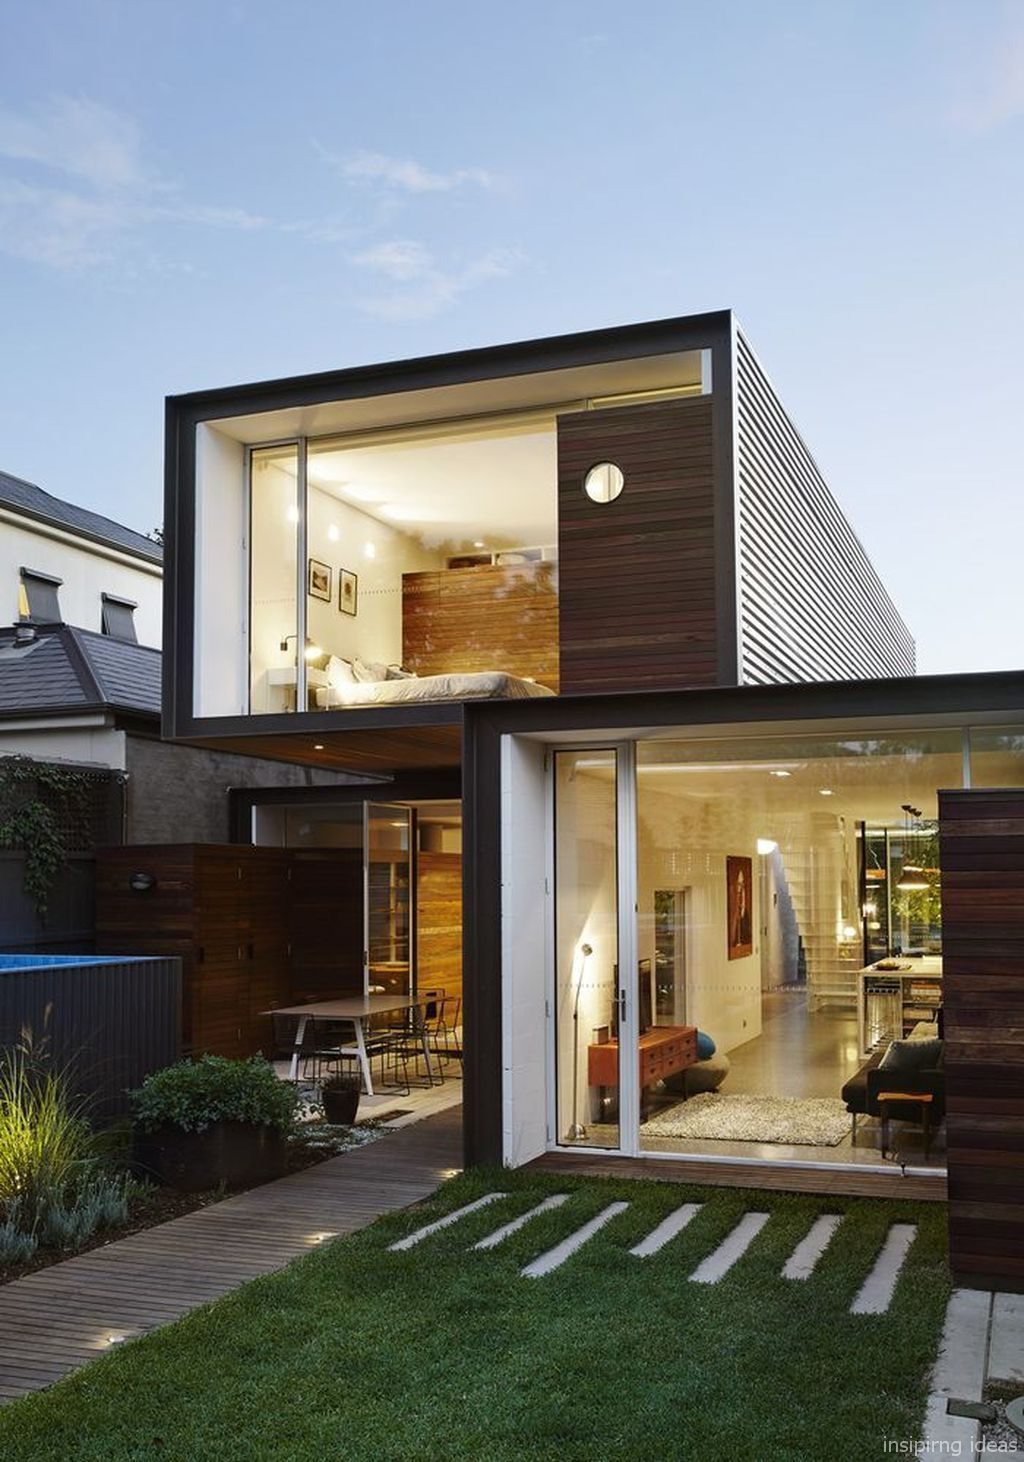 The Hot Trend Of Shipping Container Homes Fulfills Many Design